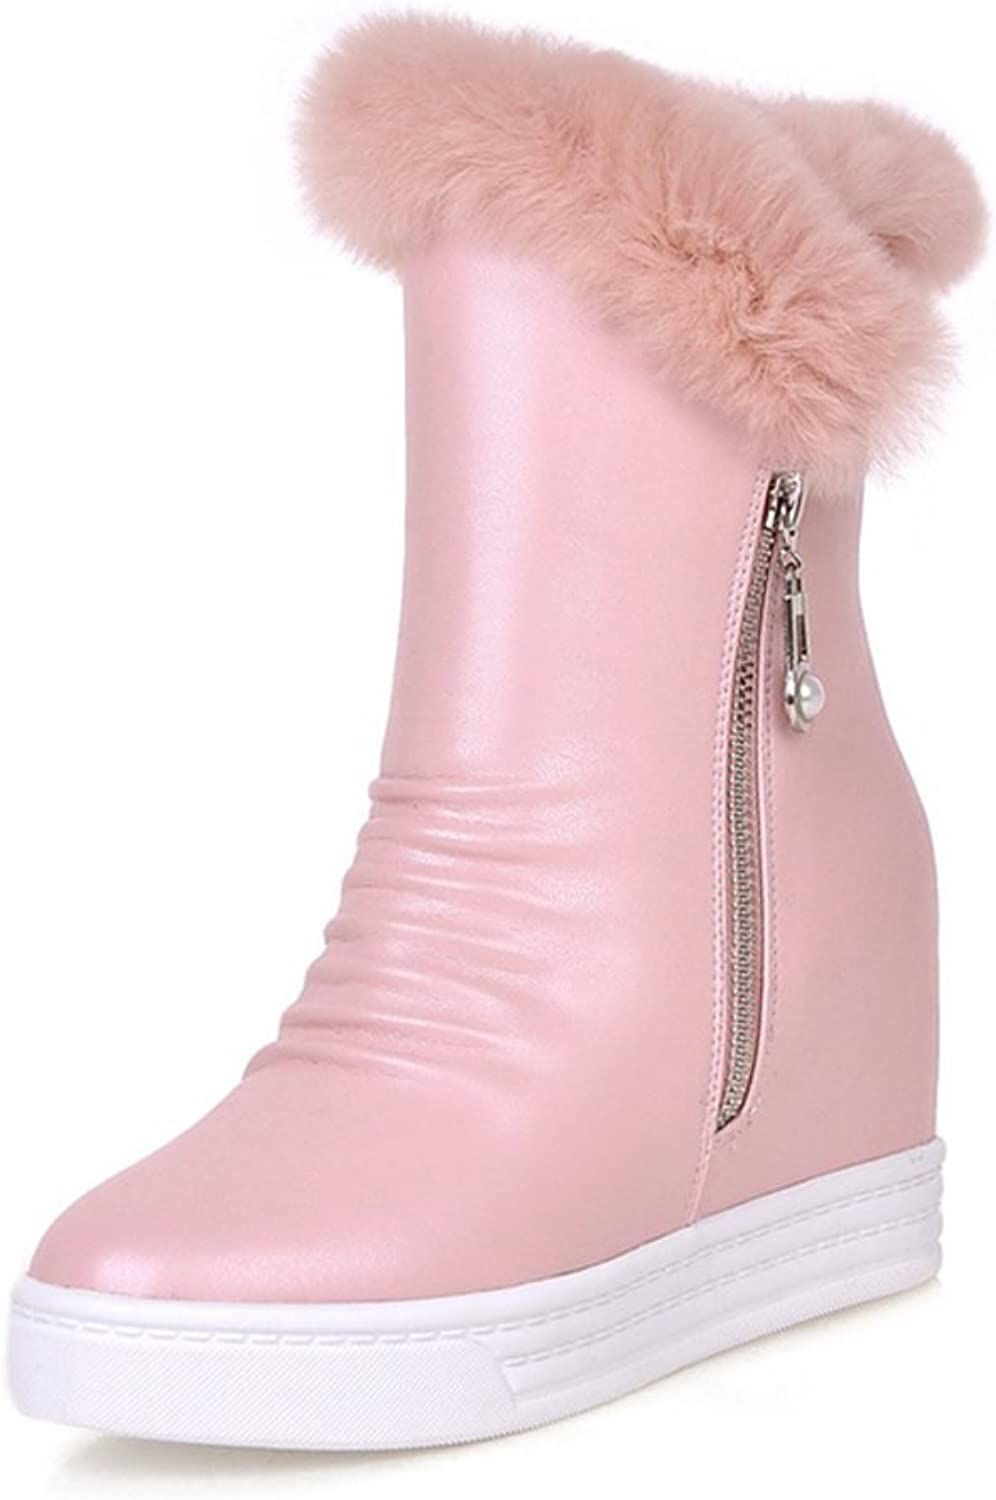 RHFDVGDS Increased winter rabbit fur short boots leisure platform Lady shoes Thick warm snow boots